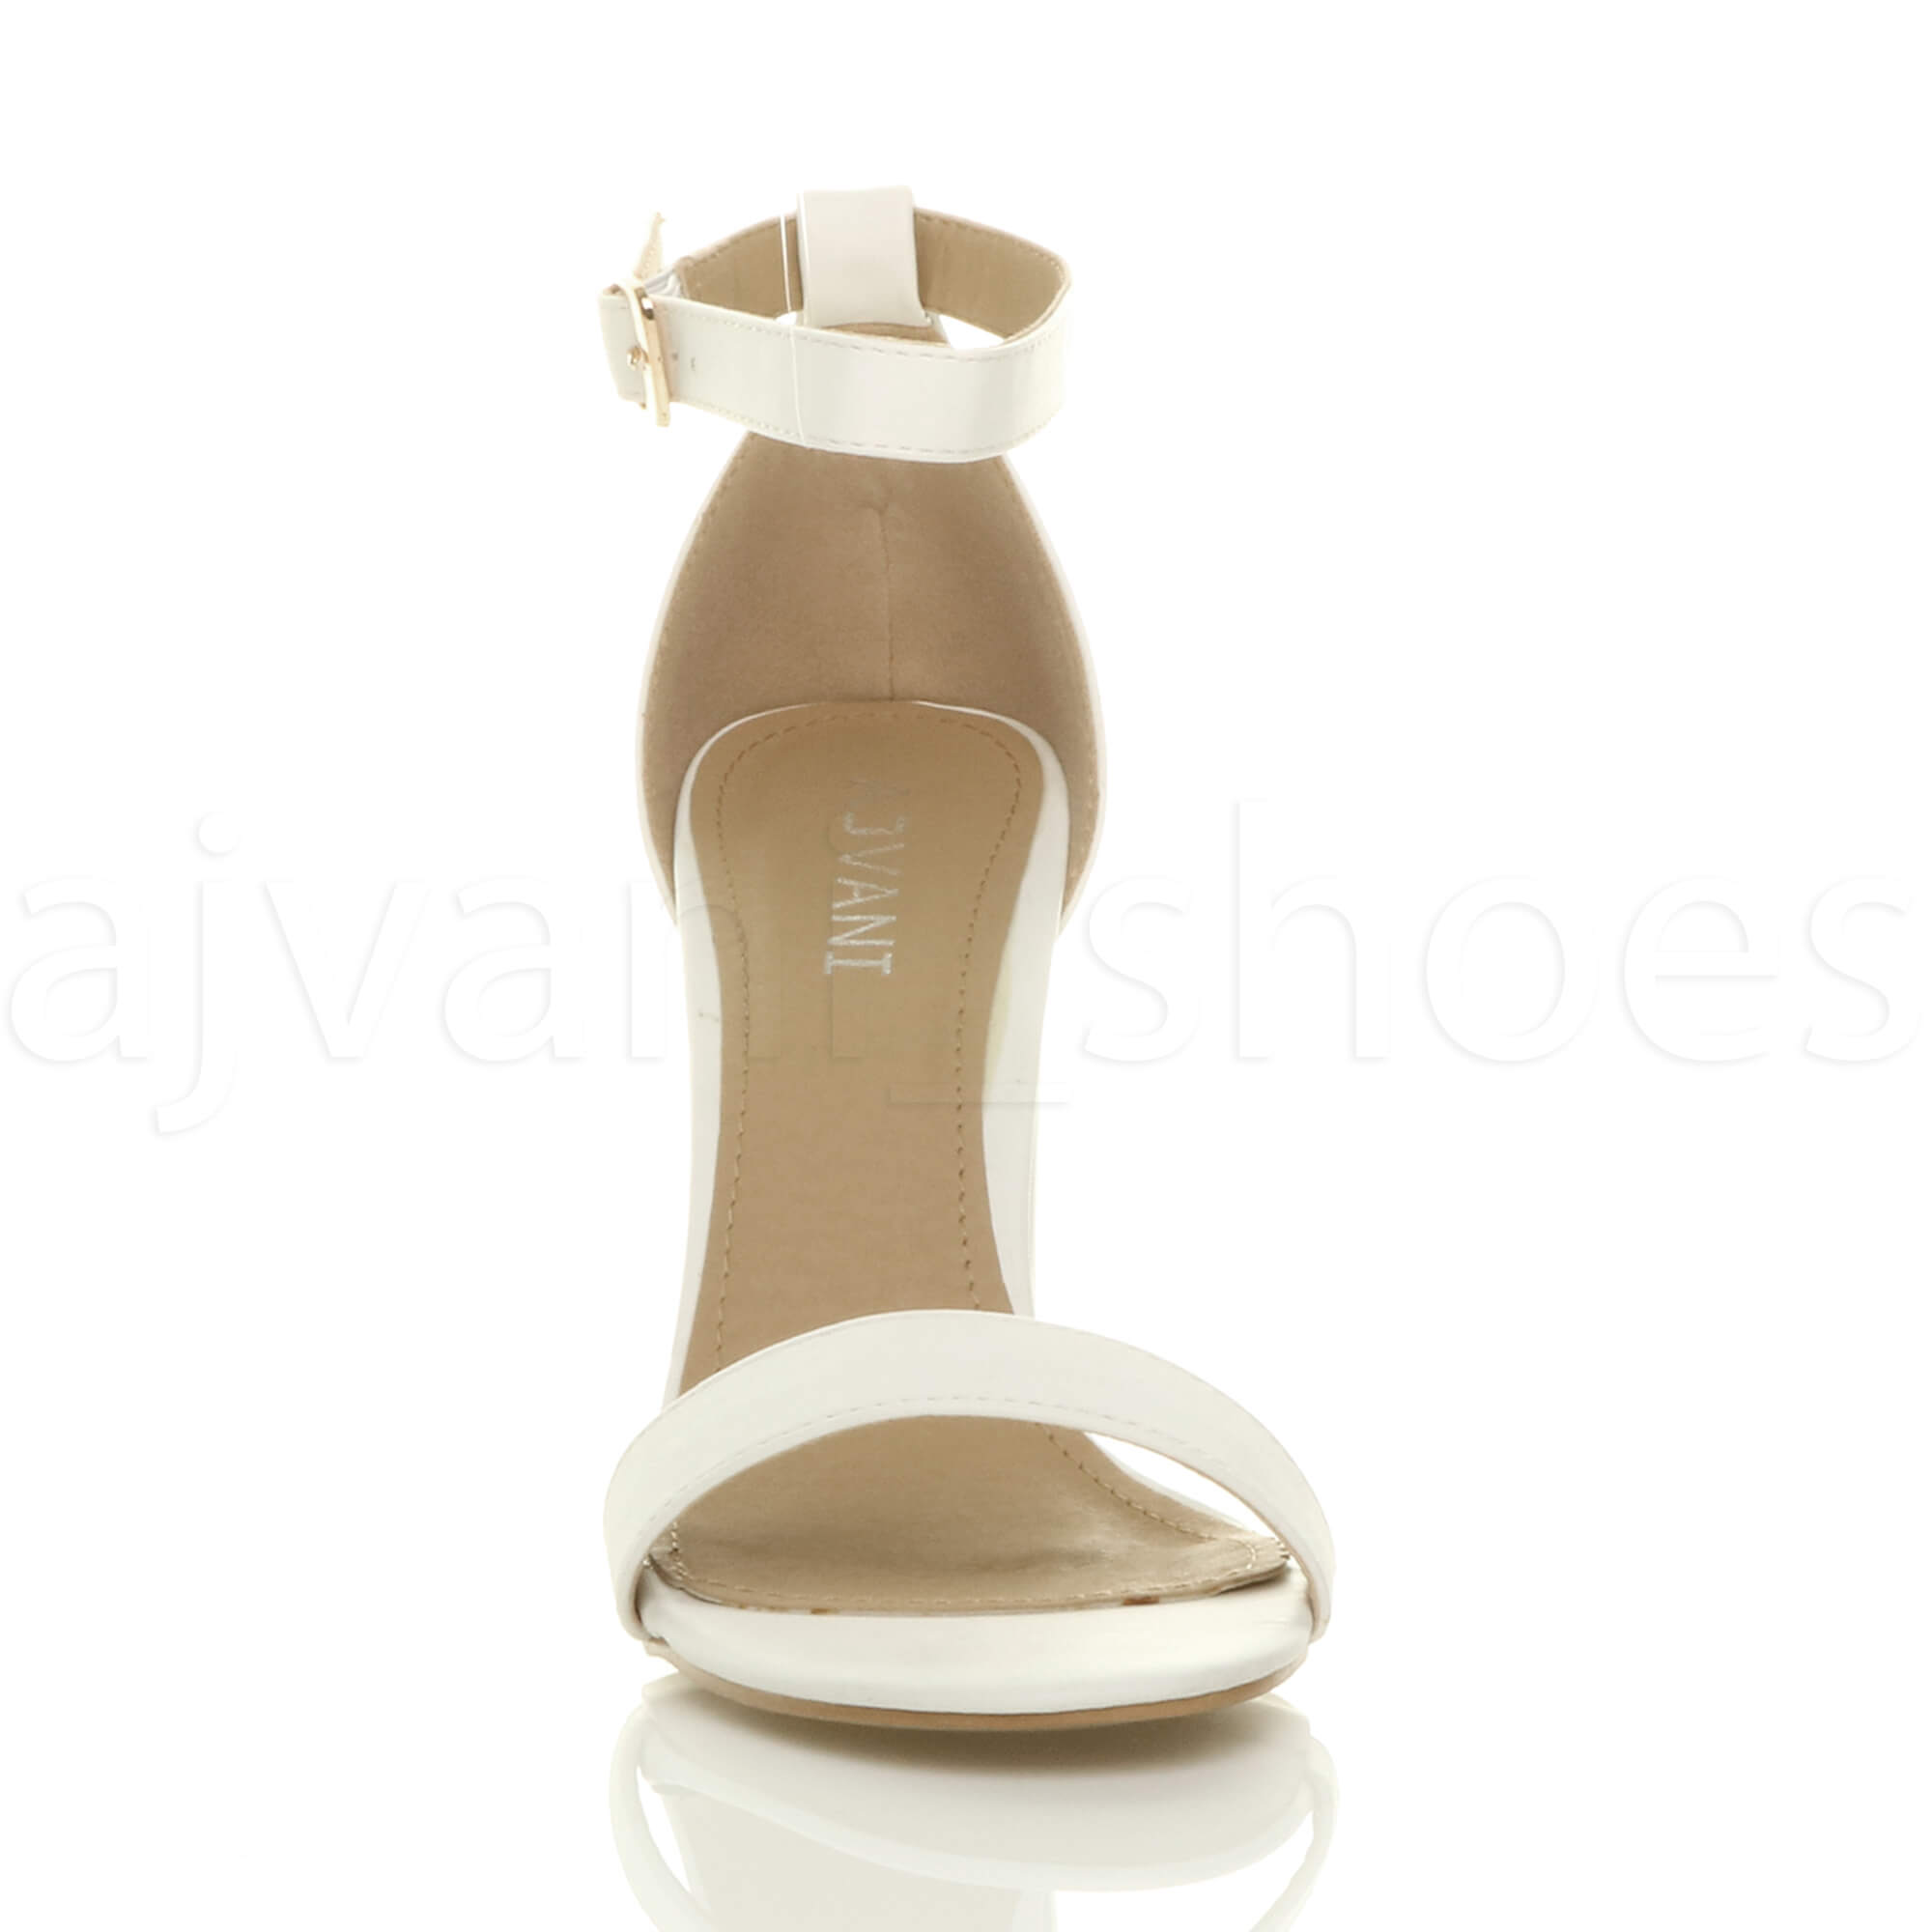 WOMENS-LADIES-BLOCK-HIGH-HEEL-ANKLE-STRAP-PEEP-TOE-STRAPPY-SANDALS-SHOES-SIZE thumbnail 171